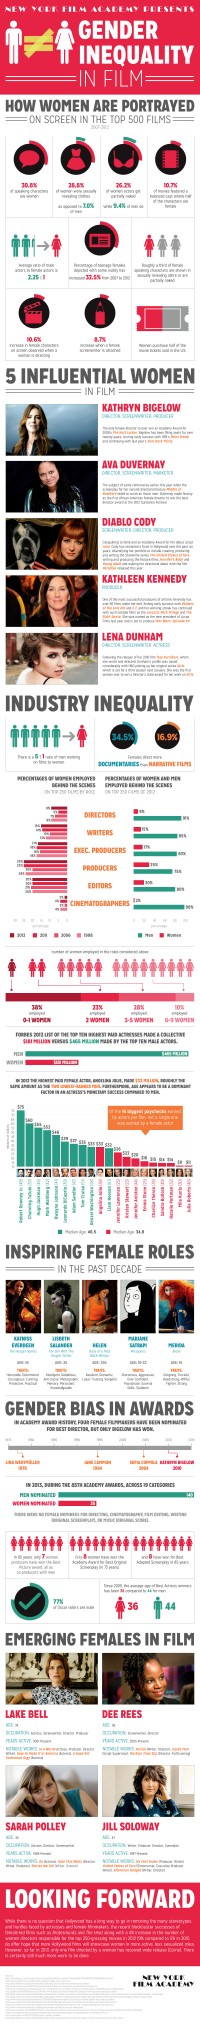 Gender Inequality in Film - An Infographic